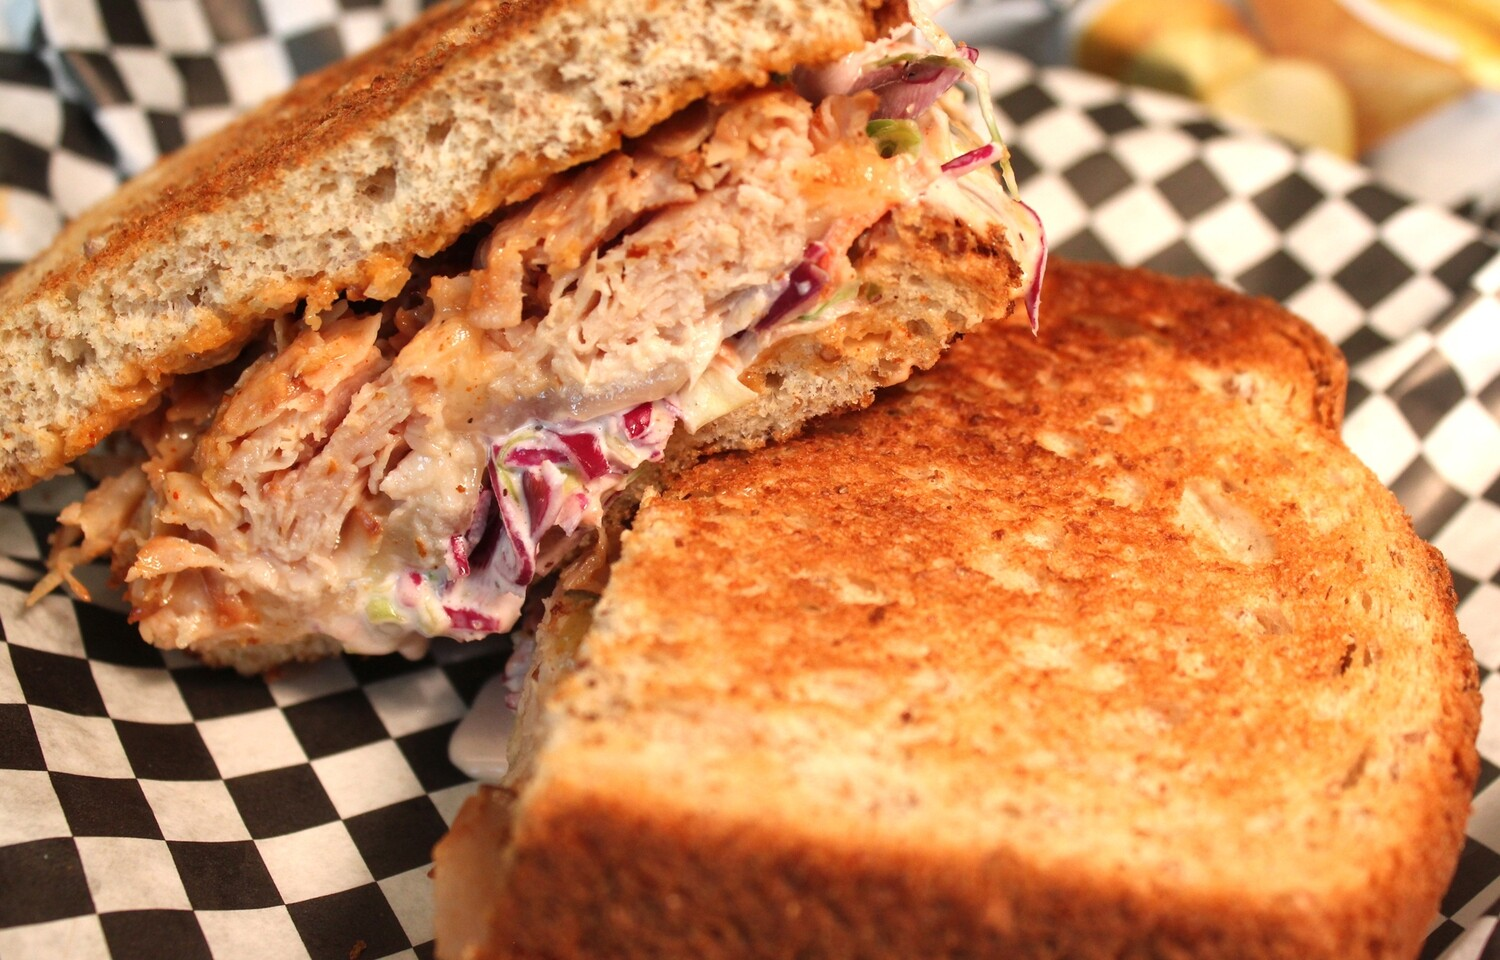 Grilled Rachel- Turkey, House made Slaw, Russian Dressing, Swiss Cheese, Grilled on Wheatberry Bread